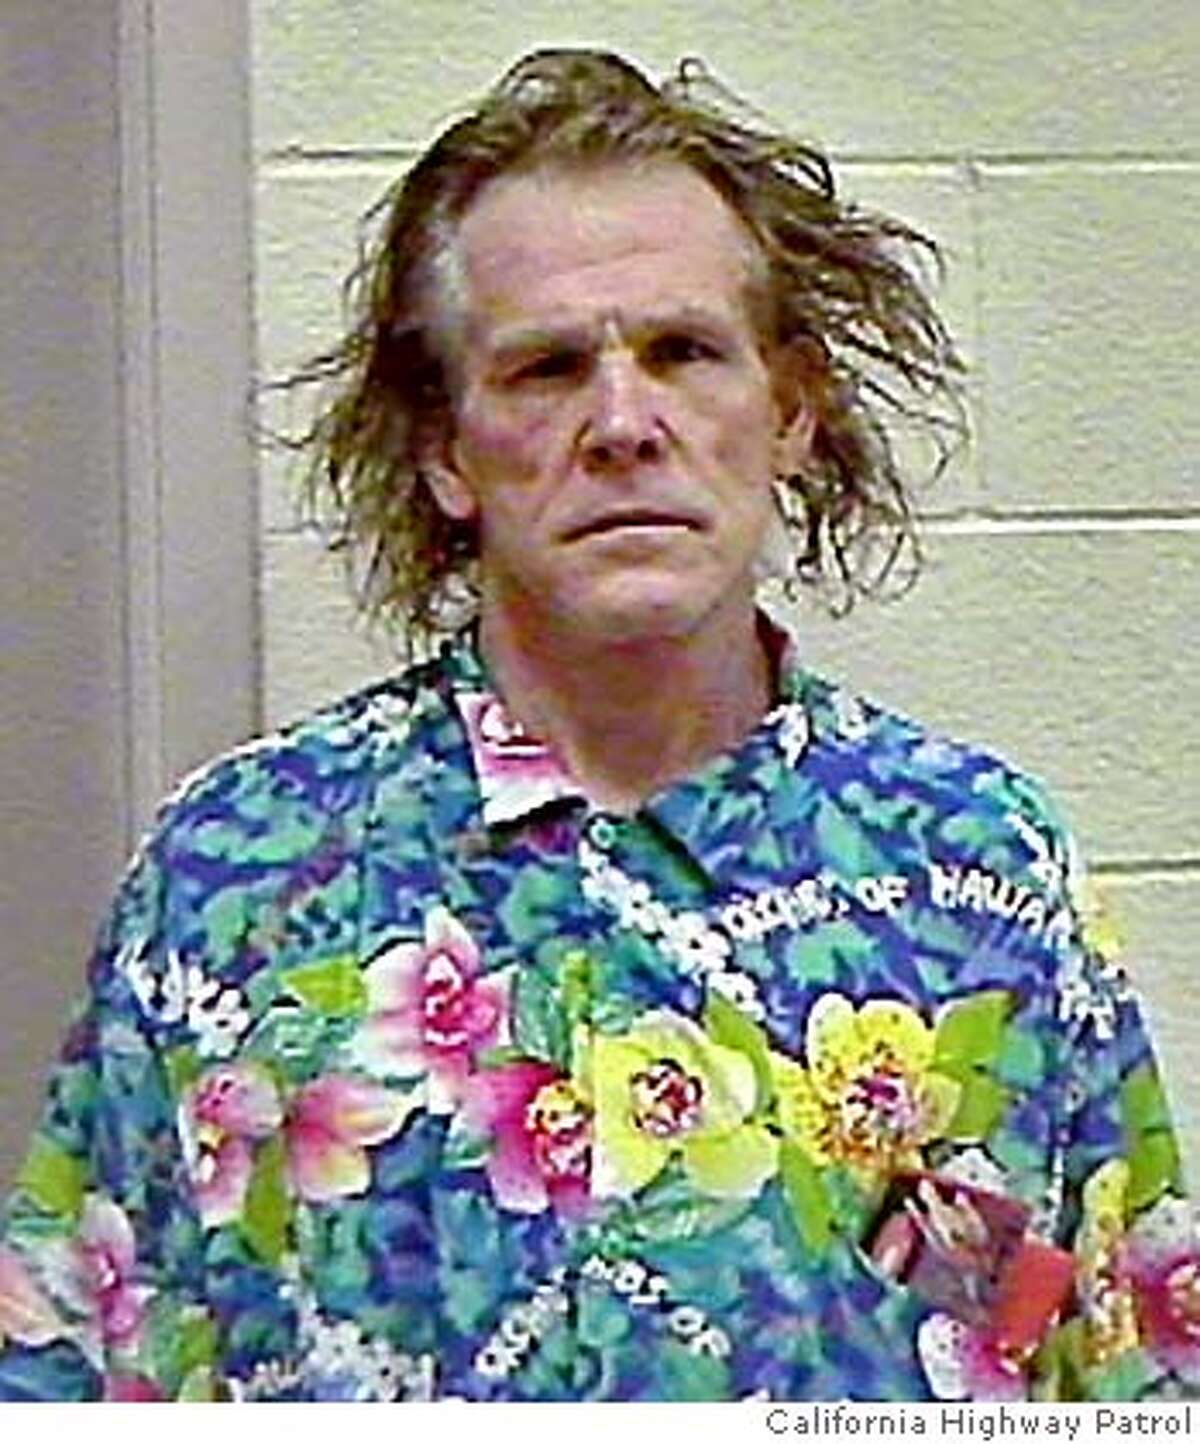 Actor Nick Nolte is shown in a booking photo released Thursday, Sept. 12, 2002, by the California Highway Patrol, taken after his arrest on suspicion of driving under the influence in Malibu, Calif. Nolte was arrested Wednesday, after a CHP officer saw his Mercedes-Benz swerving on a highway near his home. He was handcuffed and taken to a Los Angeles County sheriff's station for booking. Nolte was cited and released on a misdemeanor charge of driving under the influence of alcohol or drugs, police said. (AP Photo/California Highway Patrol) RETRANSMISSION FOR IMPROVED QUALITY; HANDOUT CALIFORNIA HIGHWAY PATROL